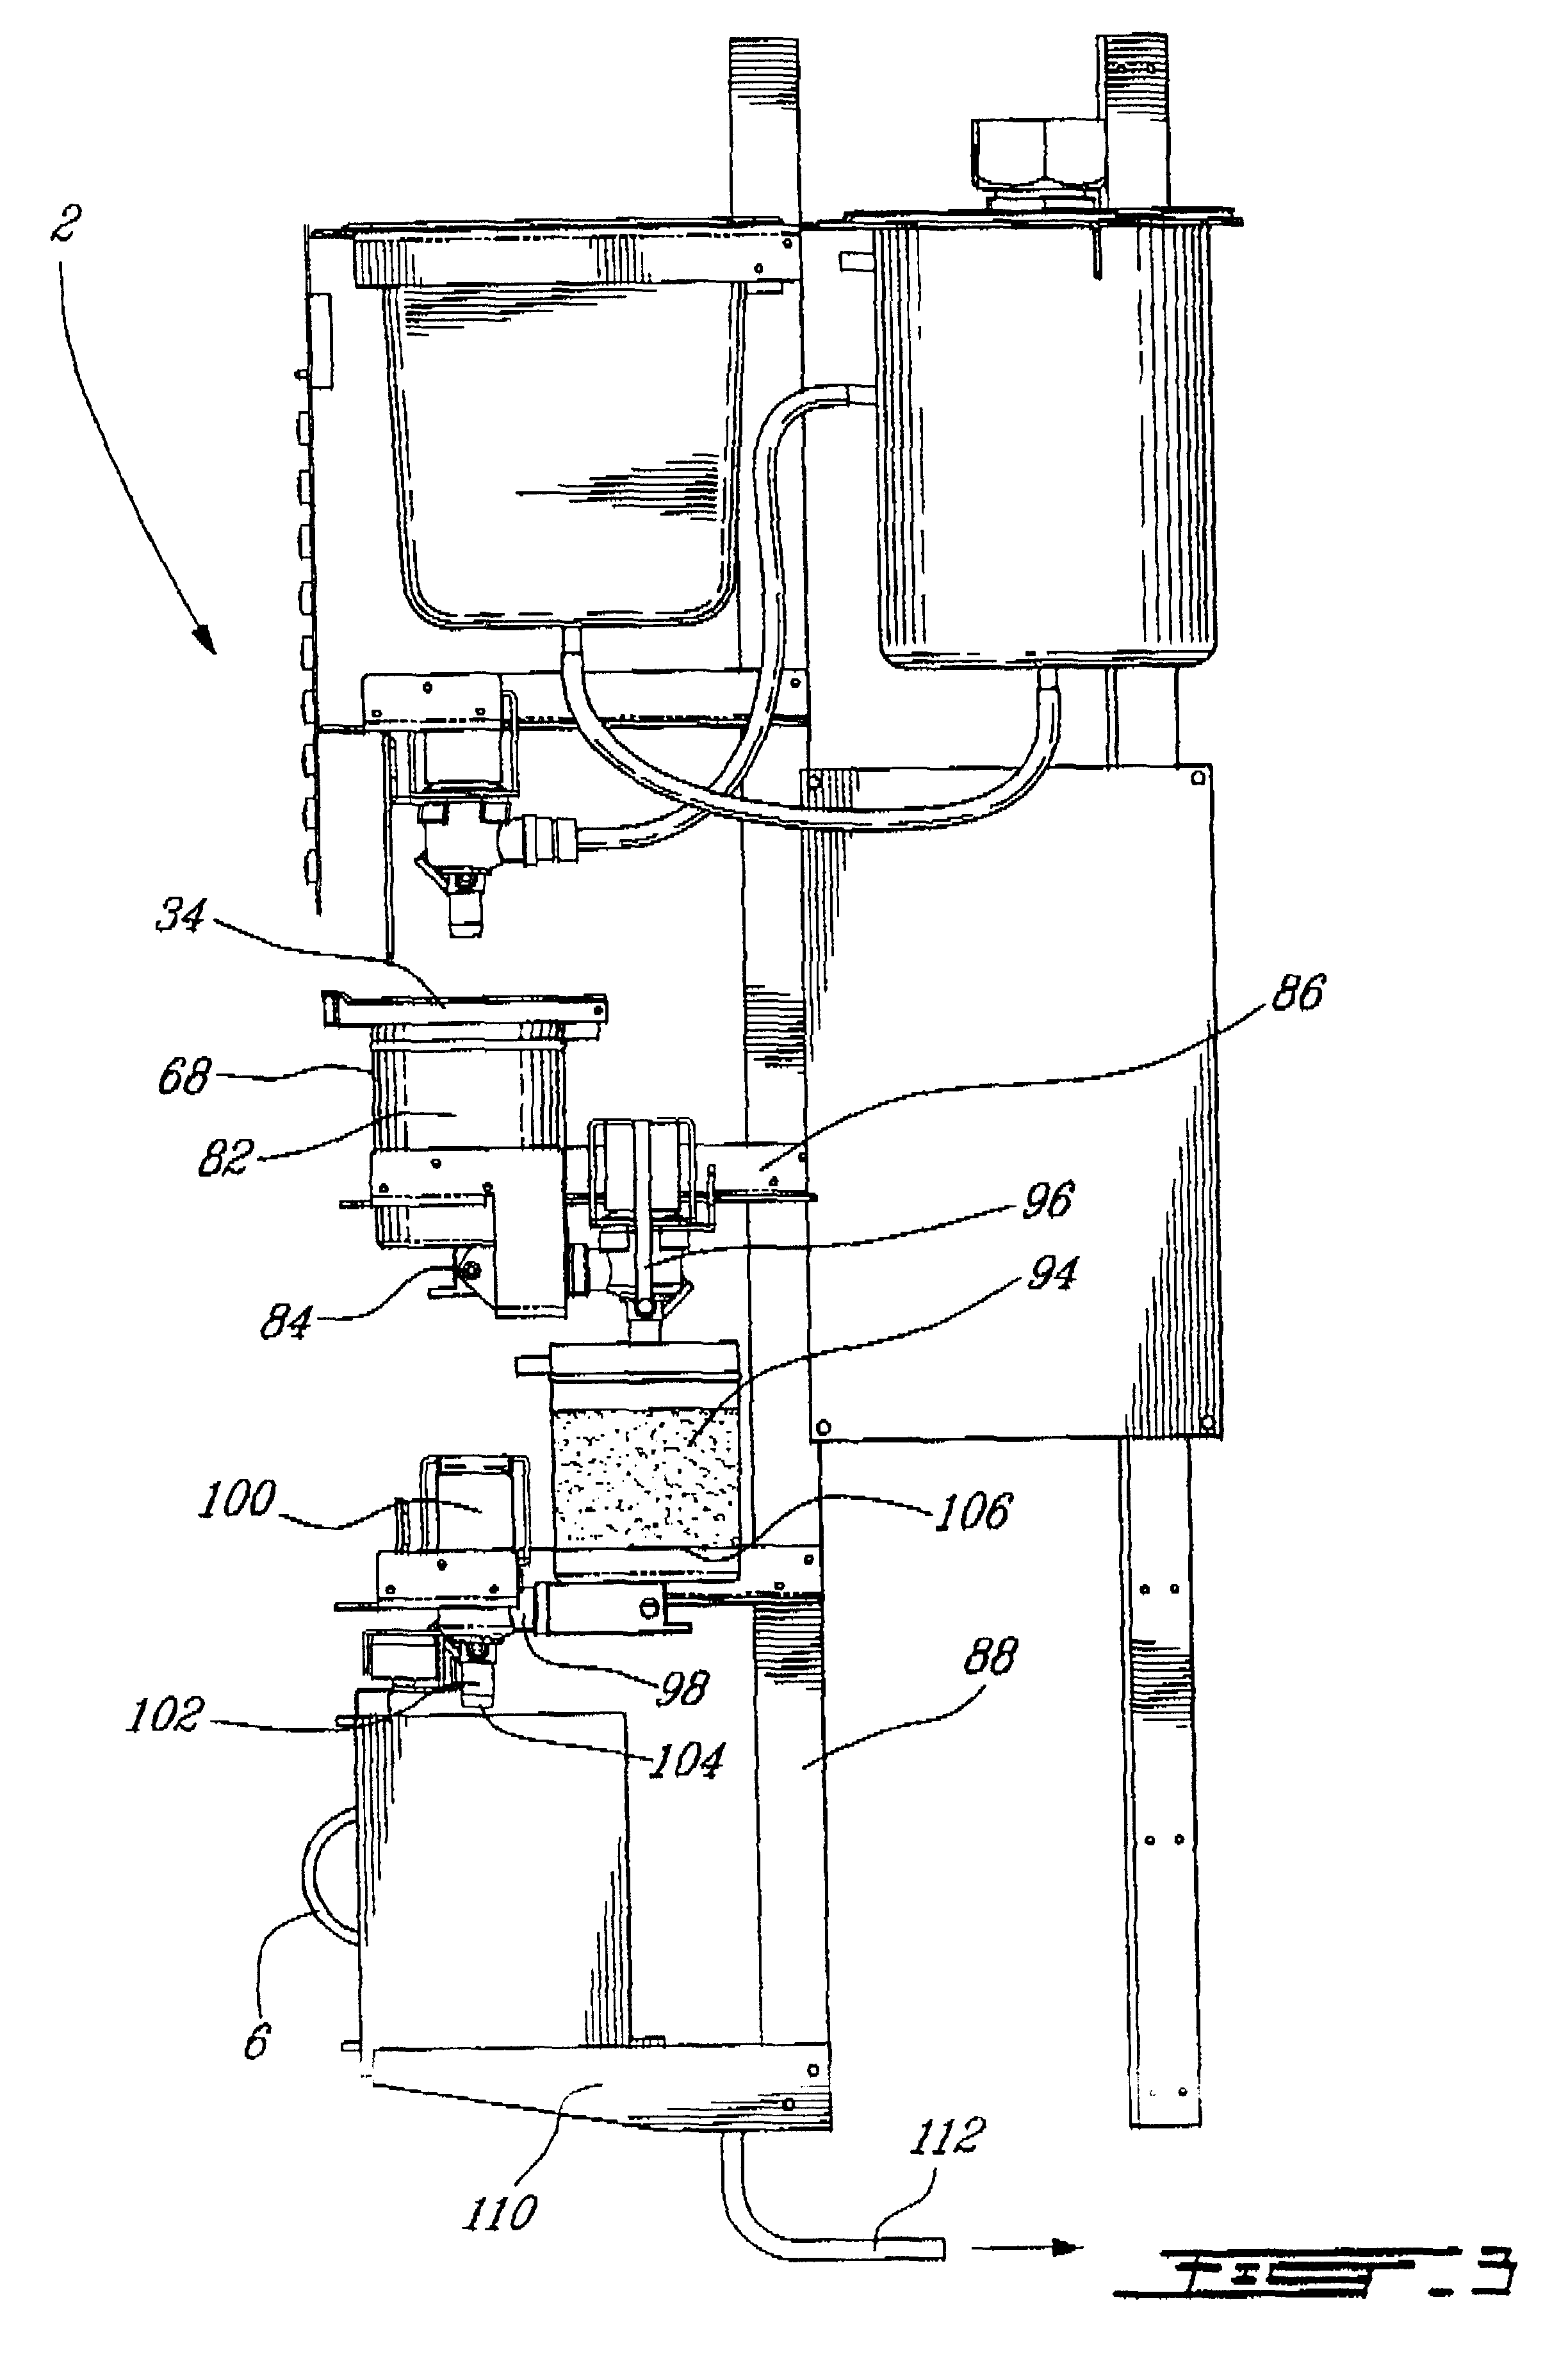 Patente Us6612224 Method And Apparatus For The Preparation Of Hot Coffee Maker Schematic Diagram Besides Bunn Patent Drawing